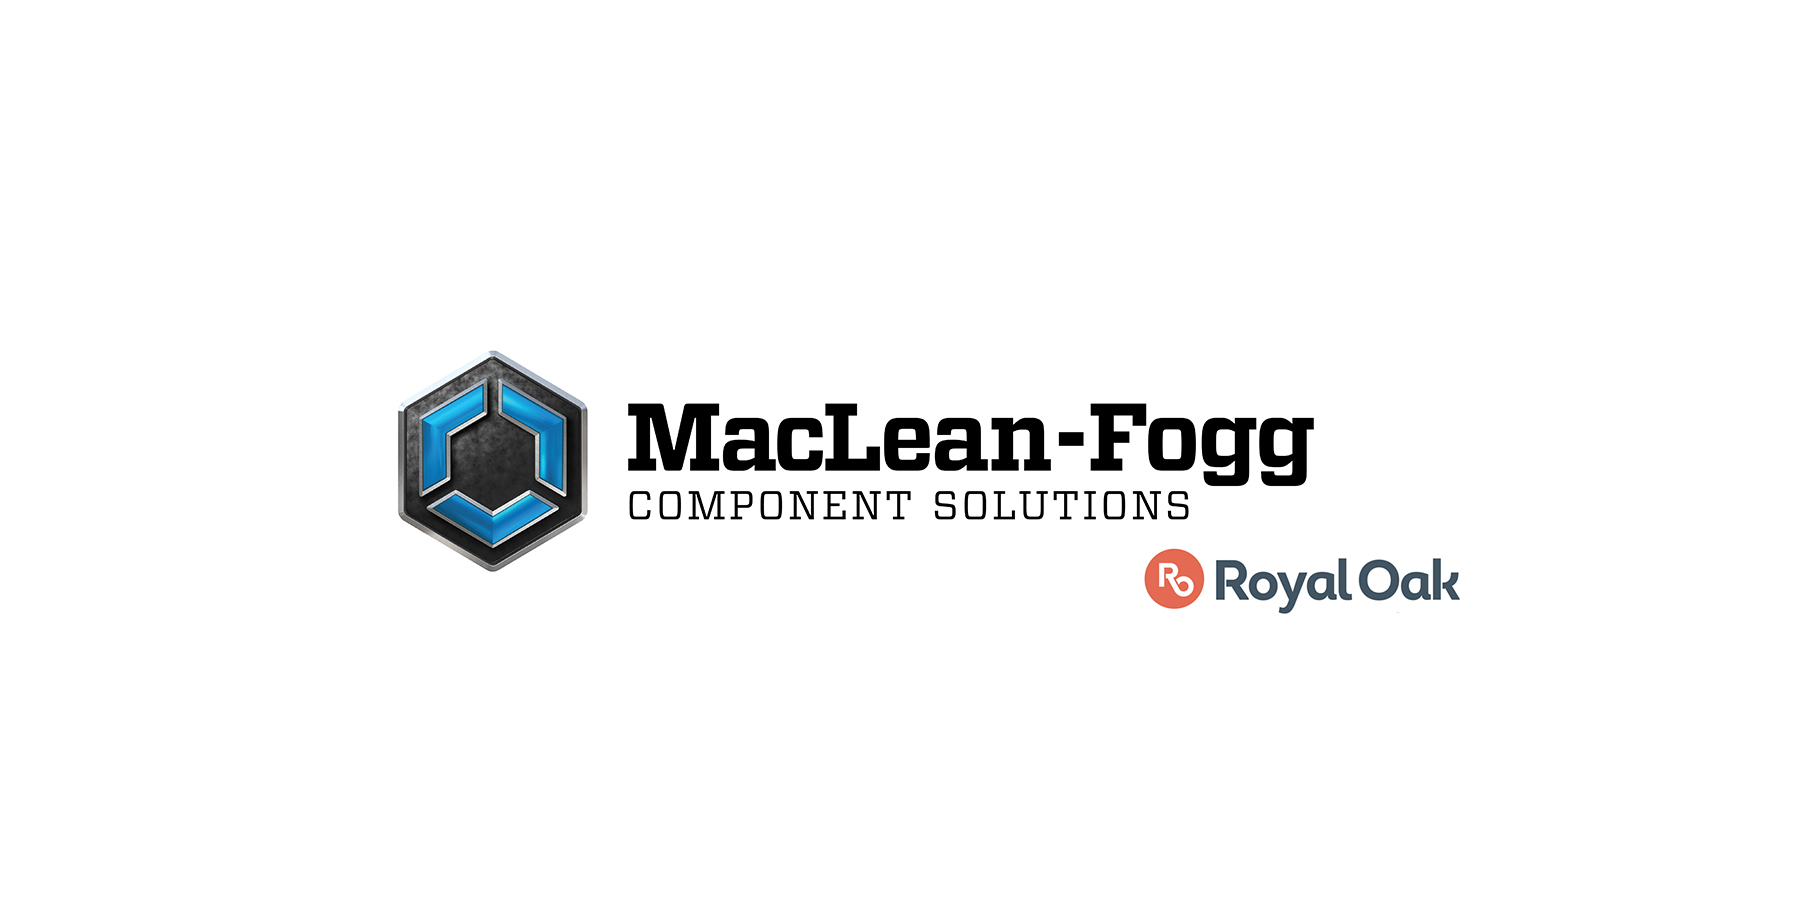 MacLean Fogg – Royal Oak